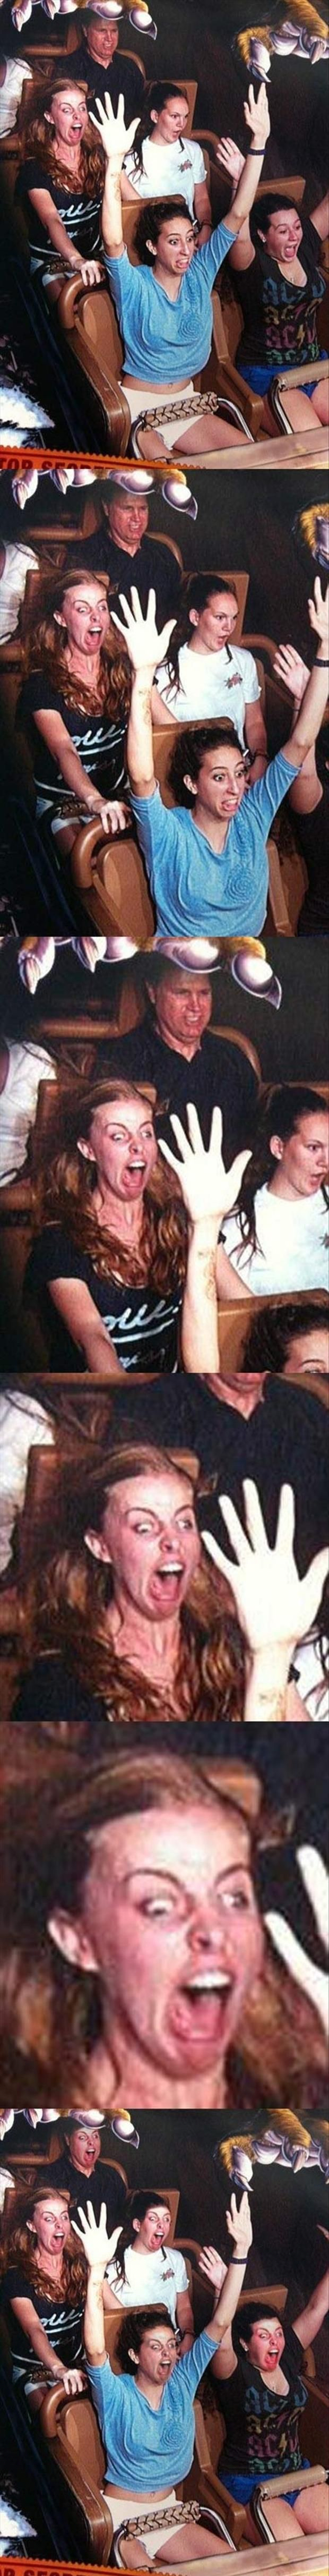 funny roller coaster pictures